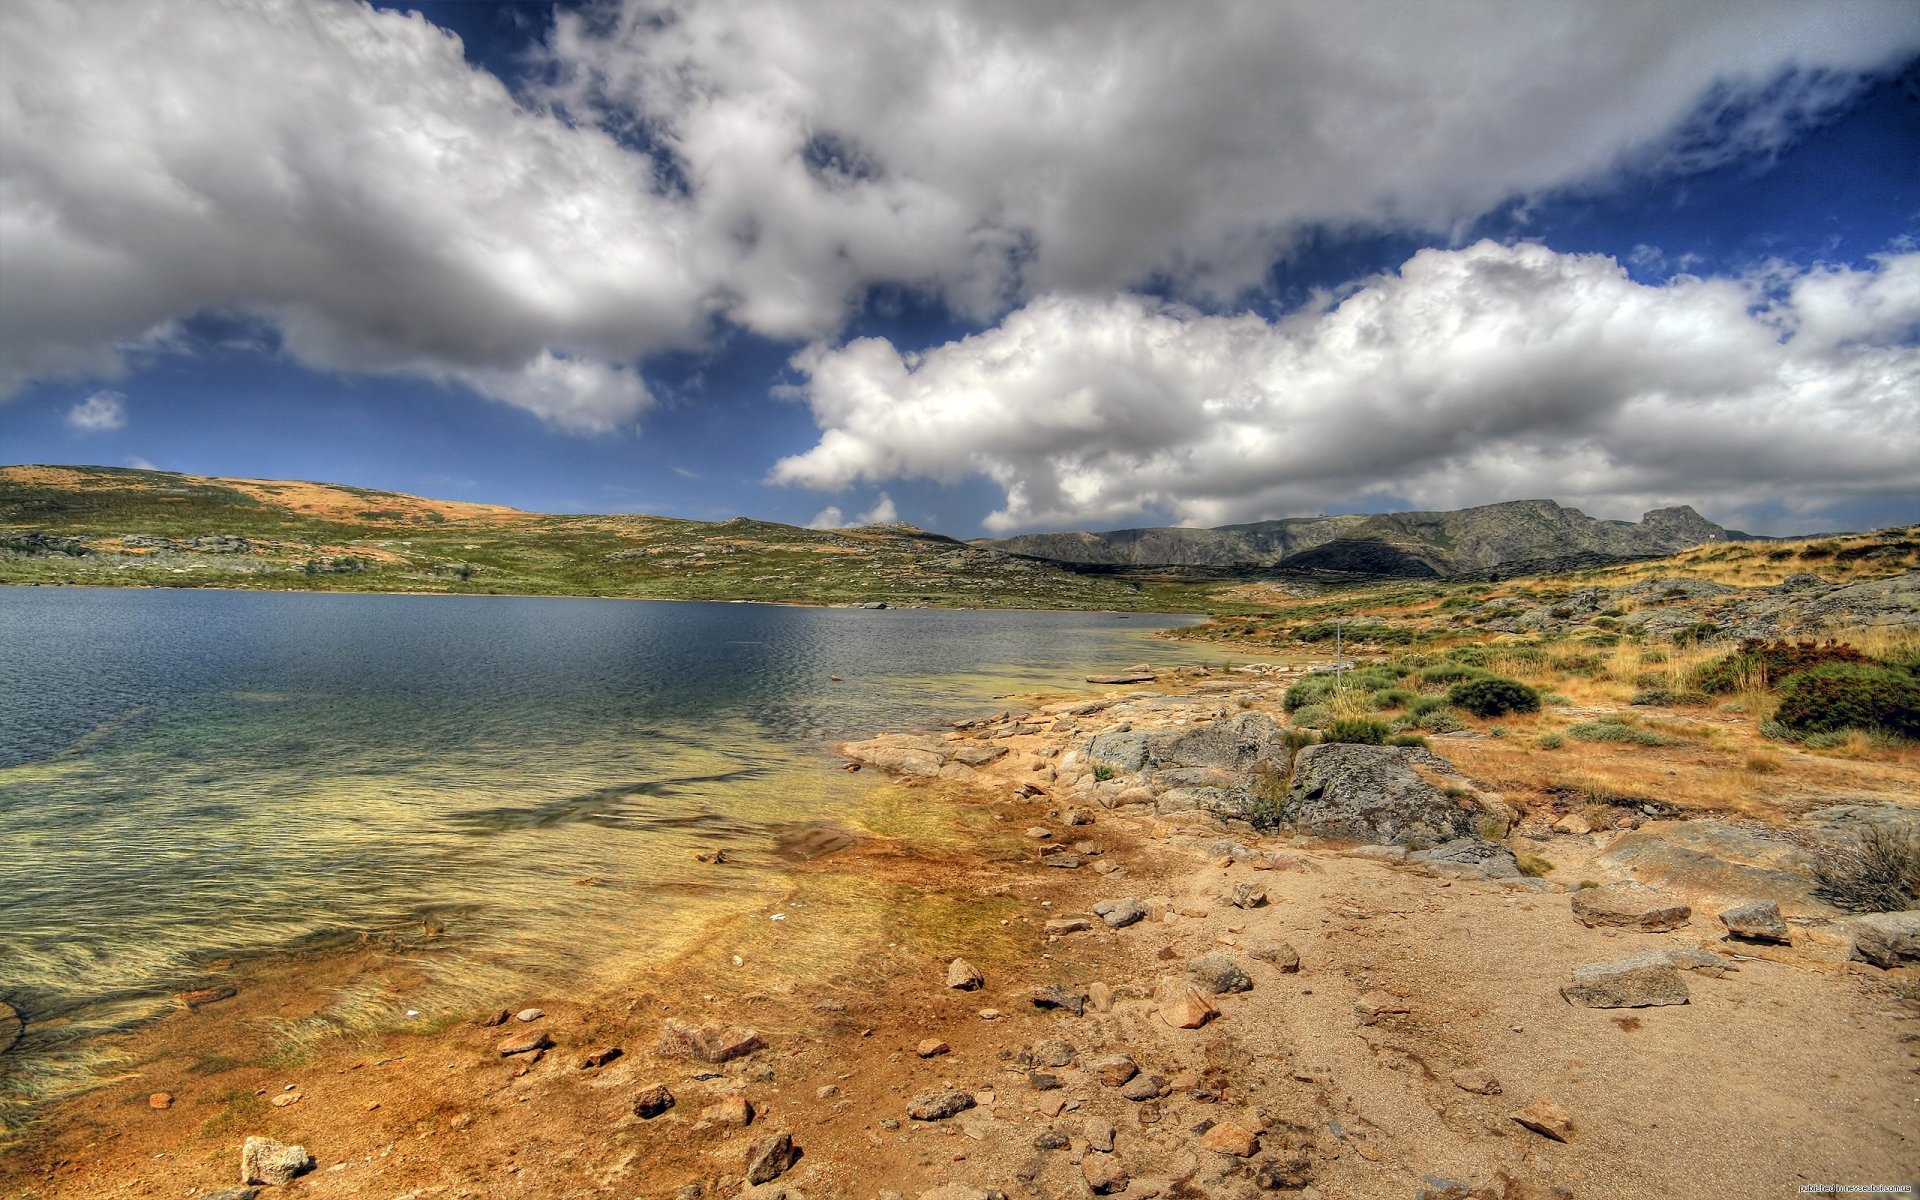 Earth - Desert  Horizon Cloud Sky Mountain Barren Lake Landscape Photography Wallpaper